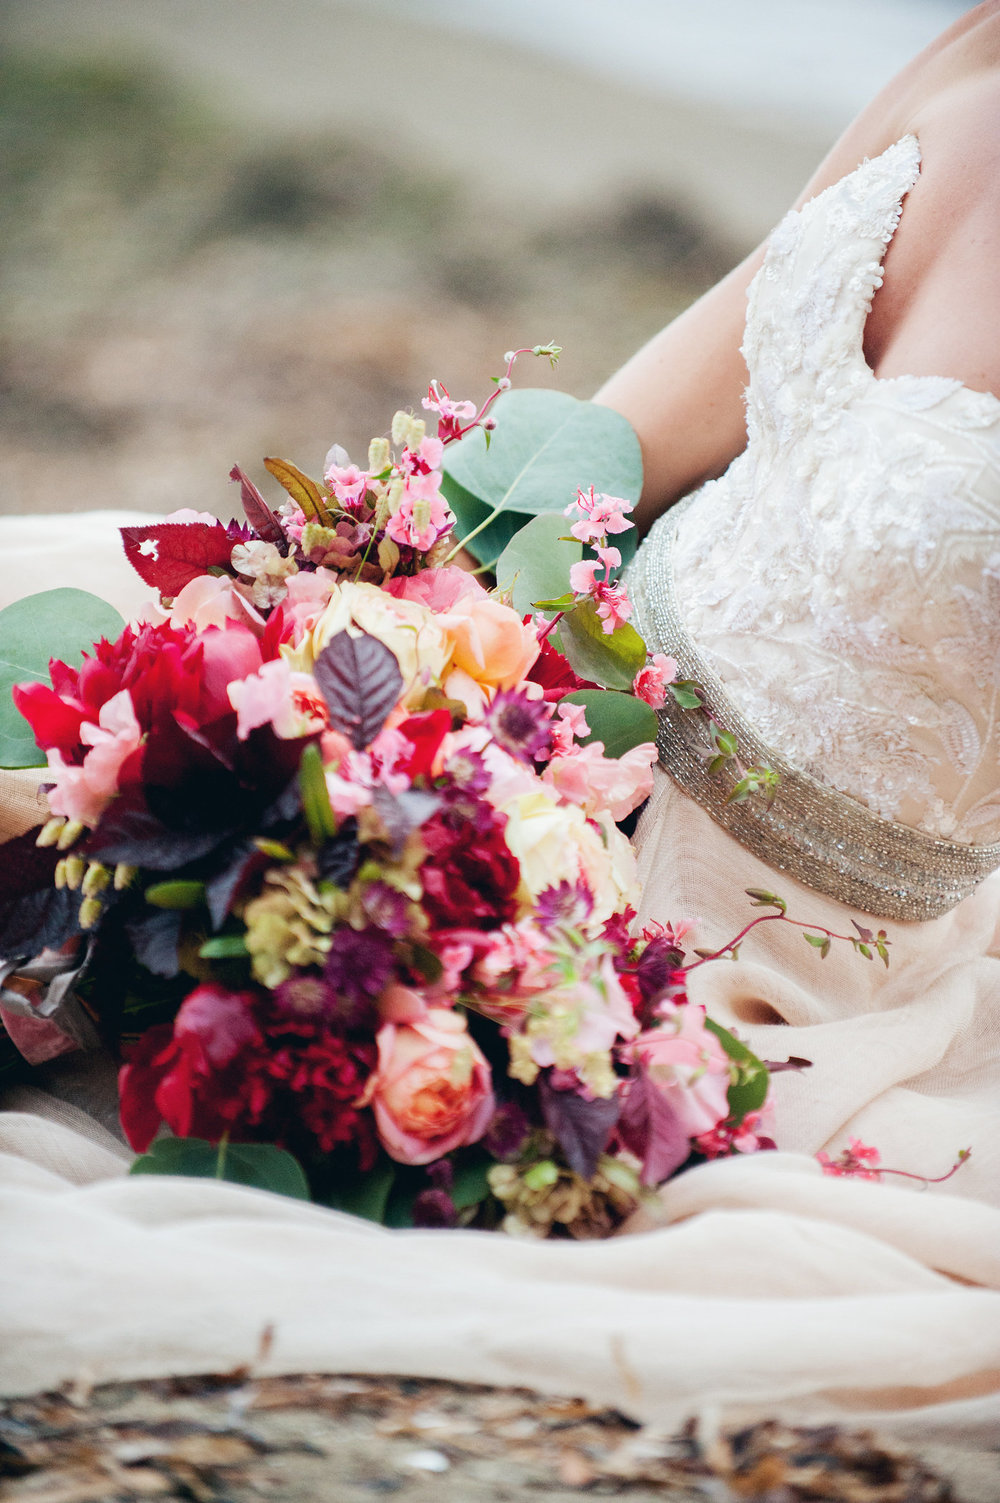 Carol Hannah Bridal Tritea, Kensington, Sequin Smoking Jacket Silver Linings Veil2095.jpg